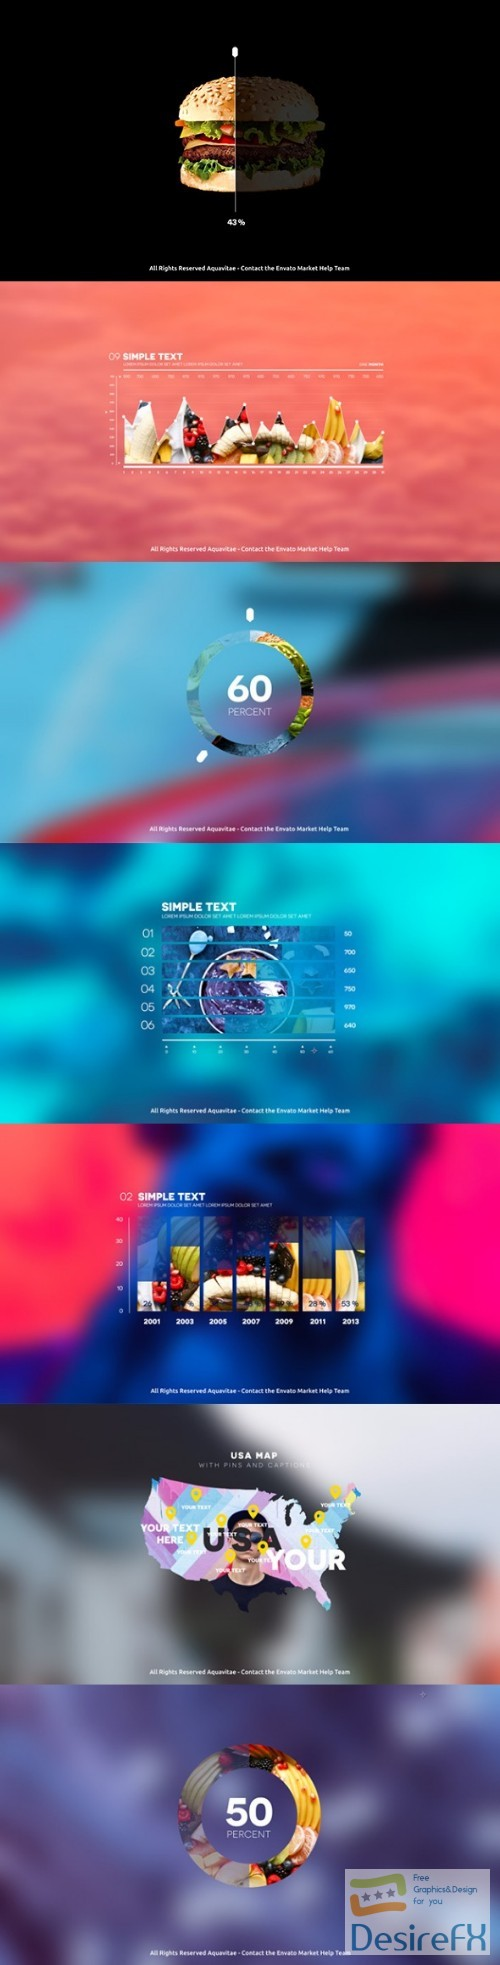 after-effects-projects - Videohive Image Infographic Creator 20168429